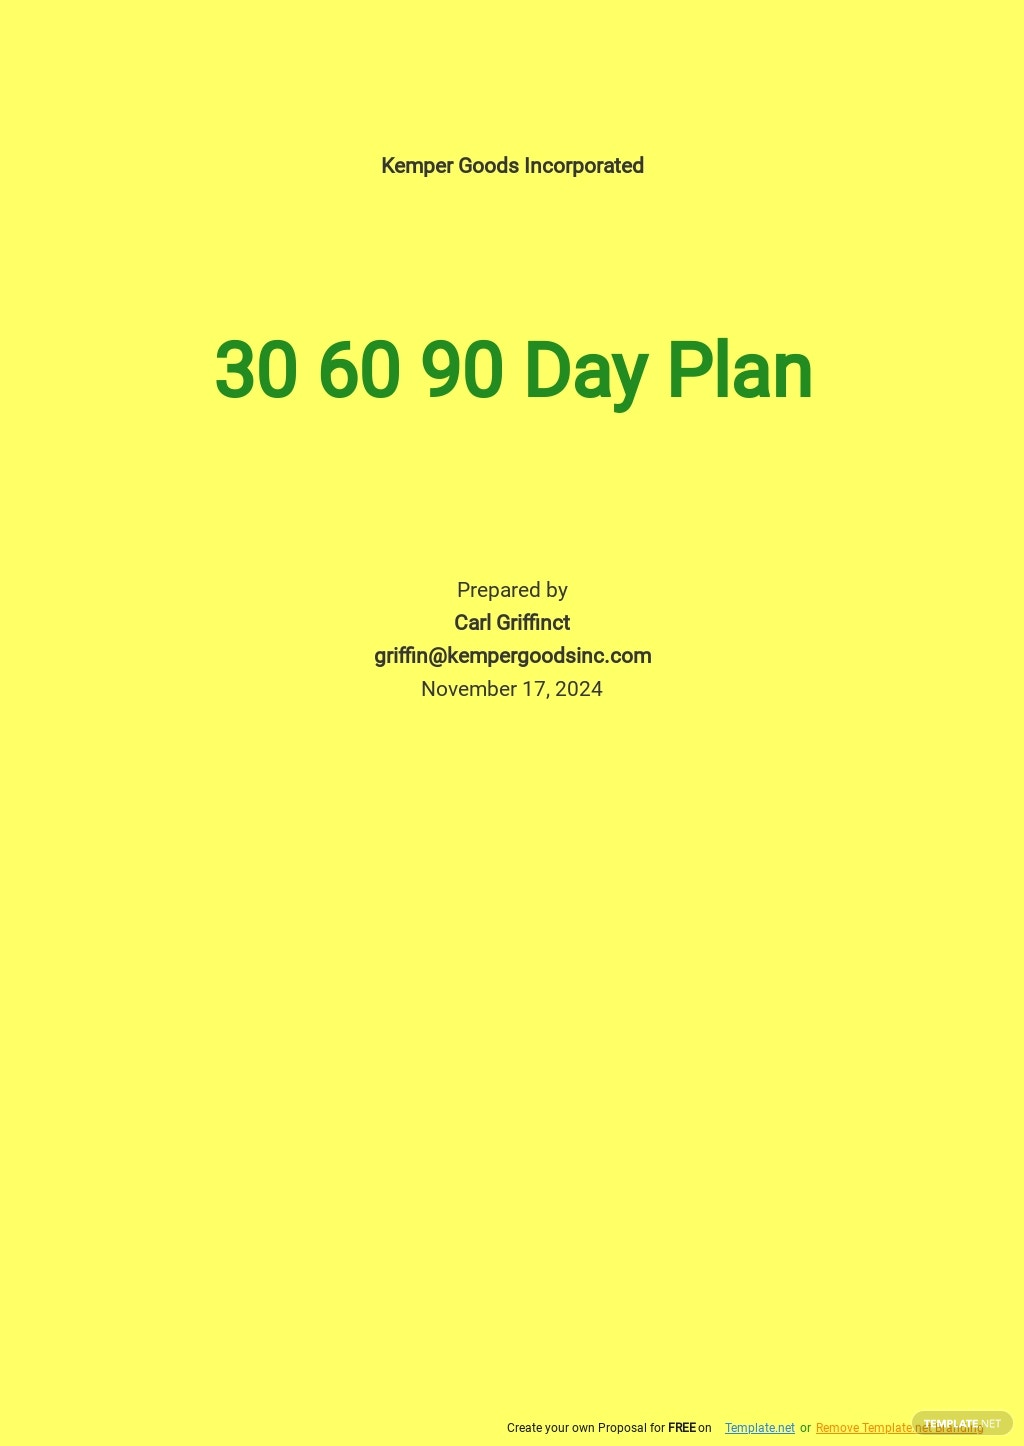 Sample 30 60 90 Day Business Plan Template.jpe